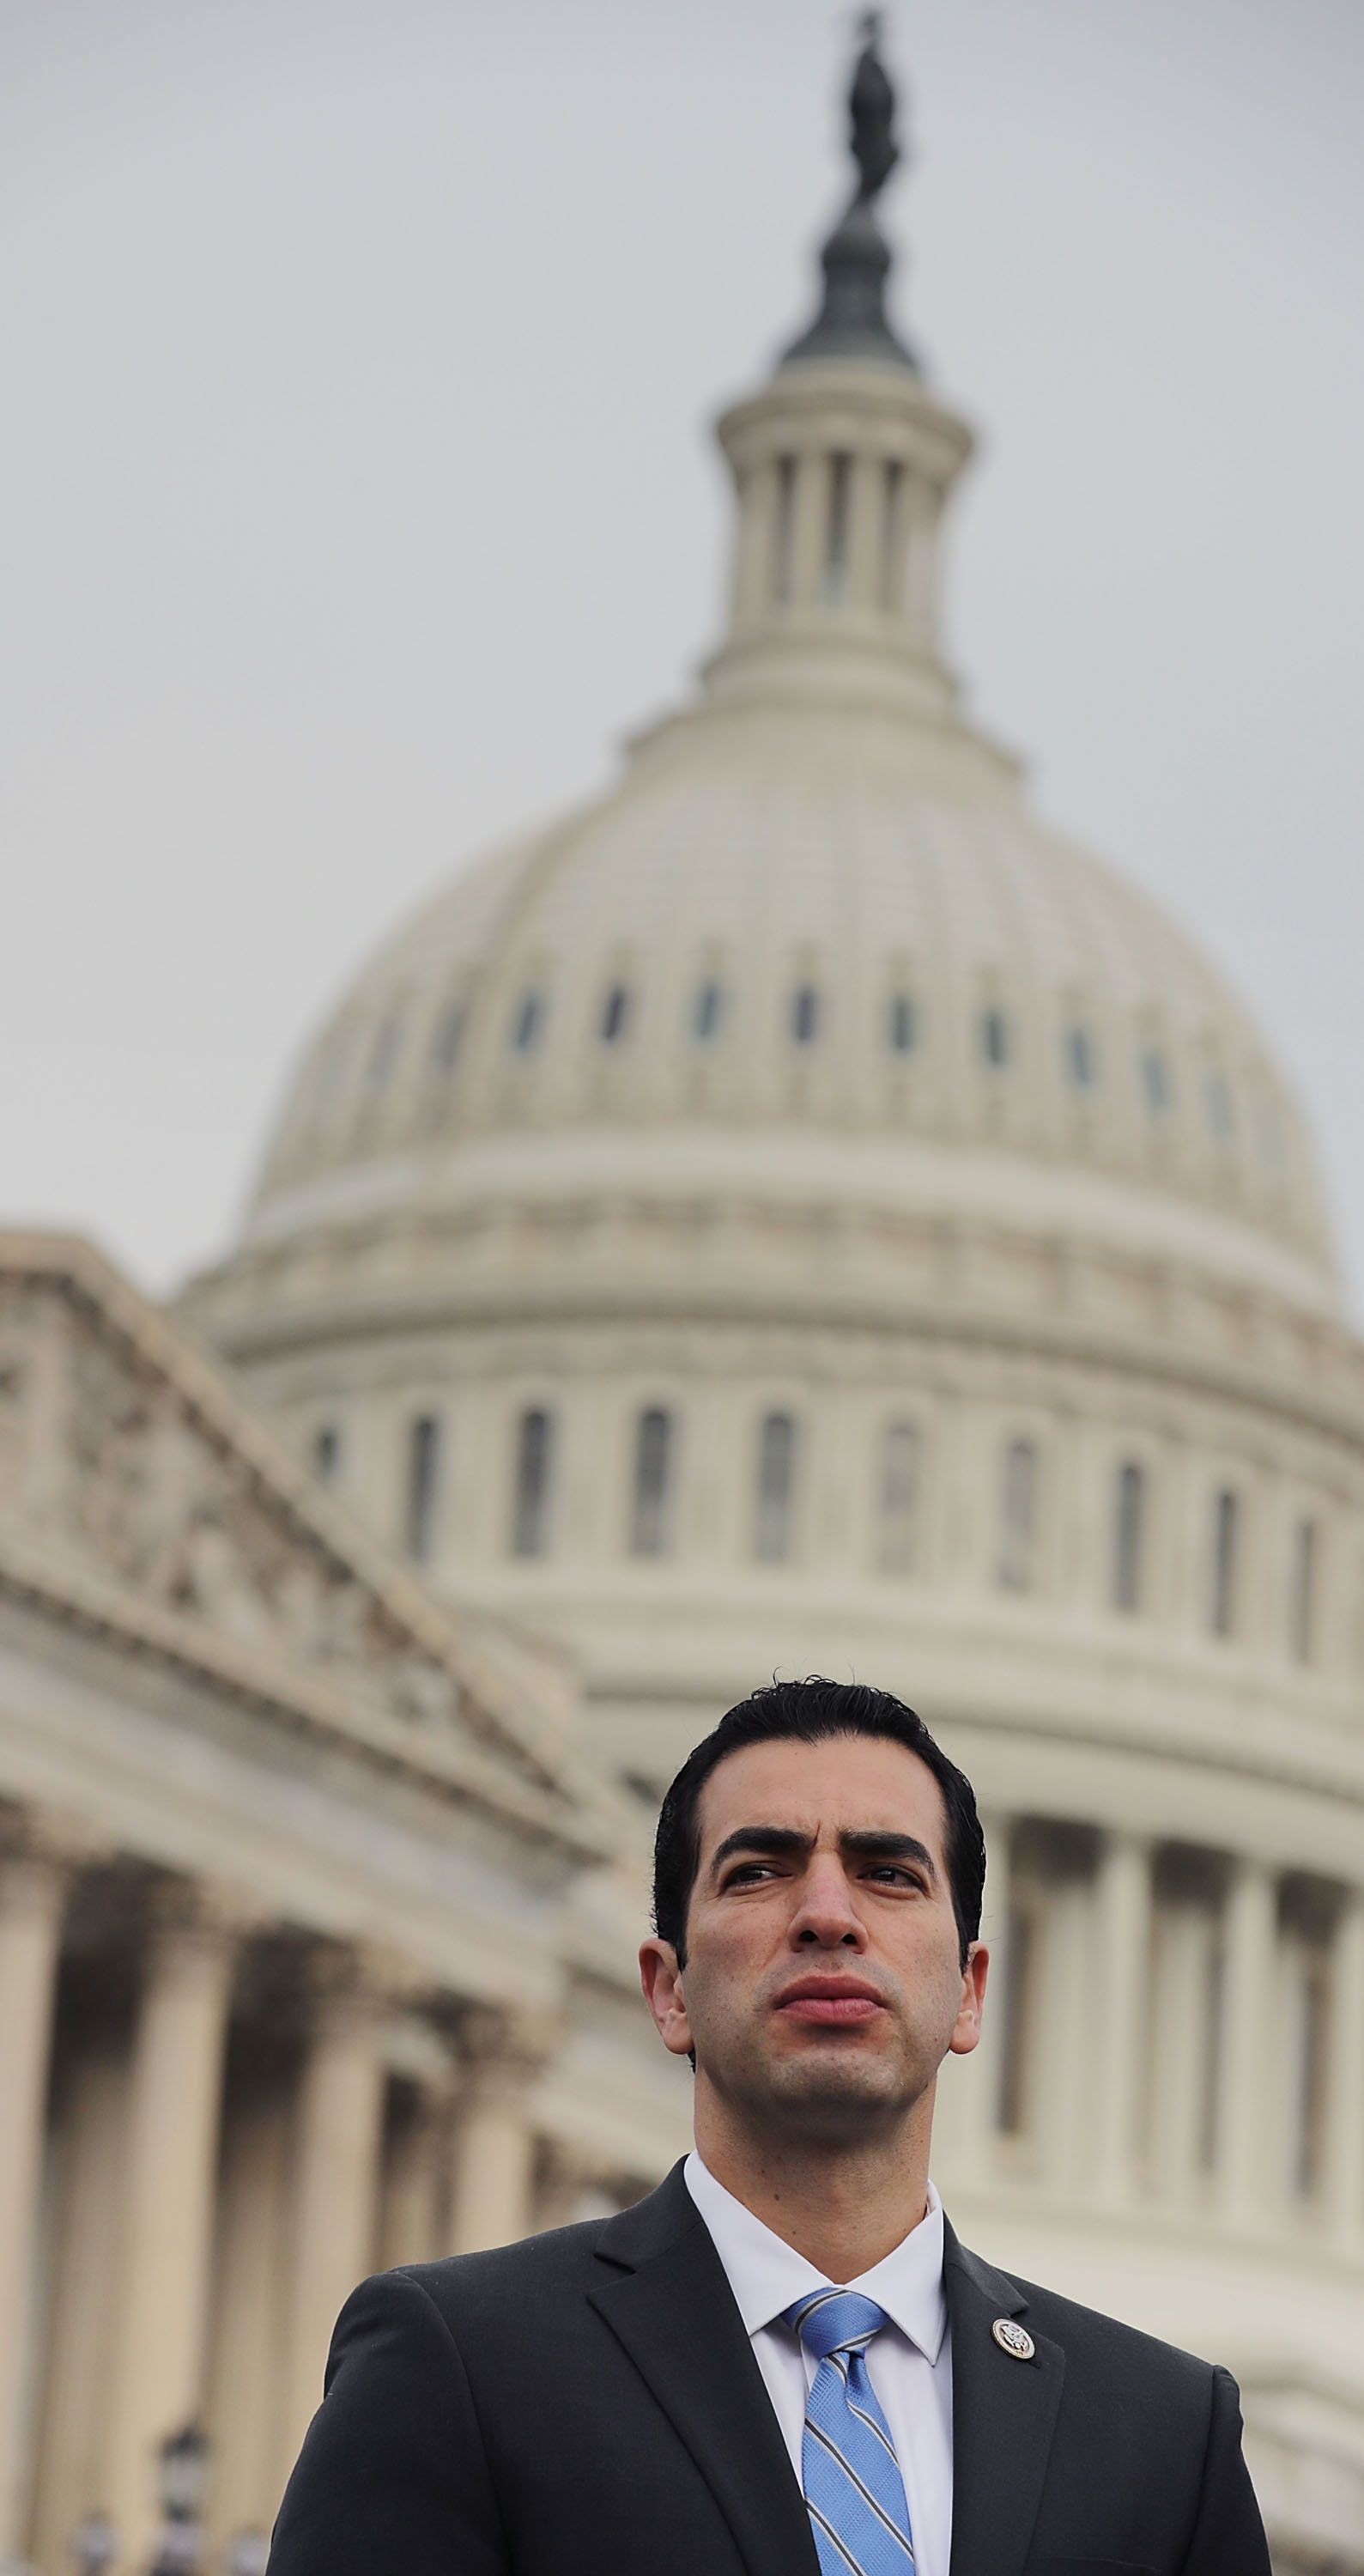 WASHINGTON, DC - NOVEMBER 01:  Rep. Ruben Kihuen (D-NV) joins fellow members of the Nevada congressional delegation to mark one month since the shooting in Las Vegas outside the U.S. Capitol November 1, 2017 in Washington, DC. The members of Congress were joined by victims and witnesses to the shooting, the worst in American history, and demanded congressional action to prevent future tragedies.  (Photo by Chip Somodevilla/Getty Images)